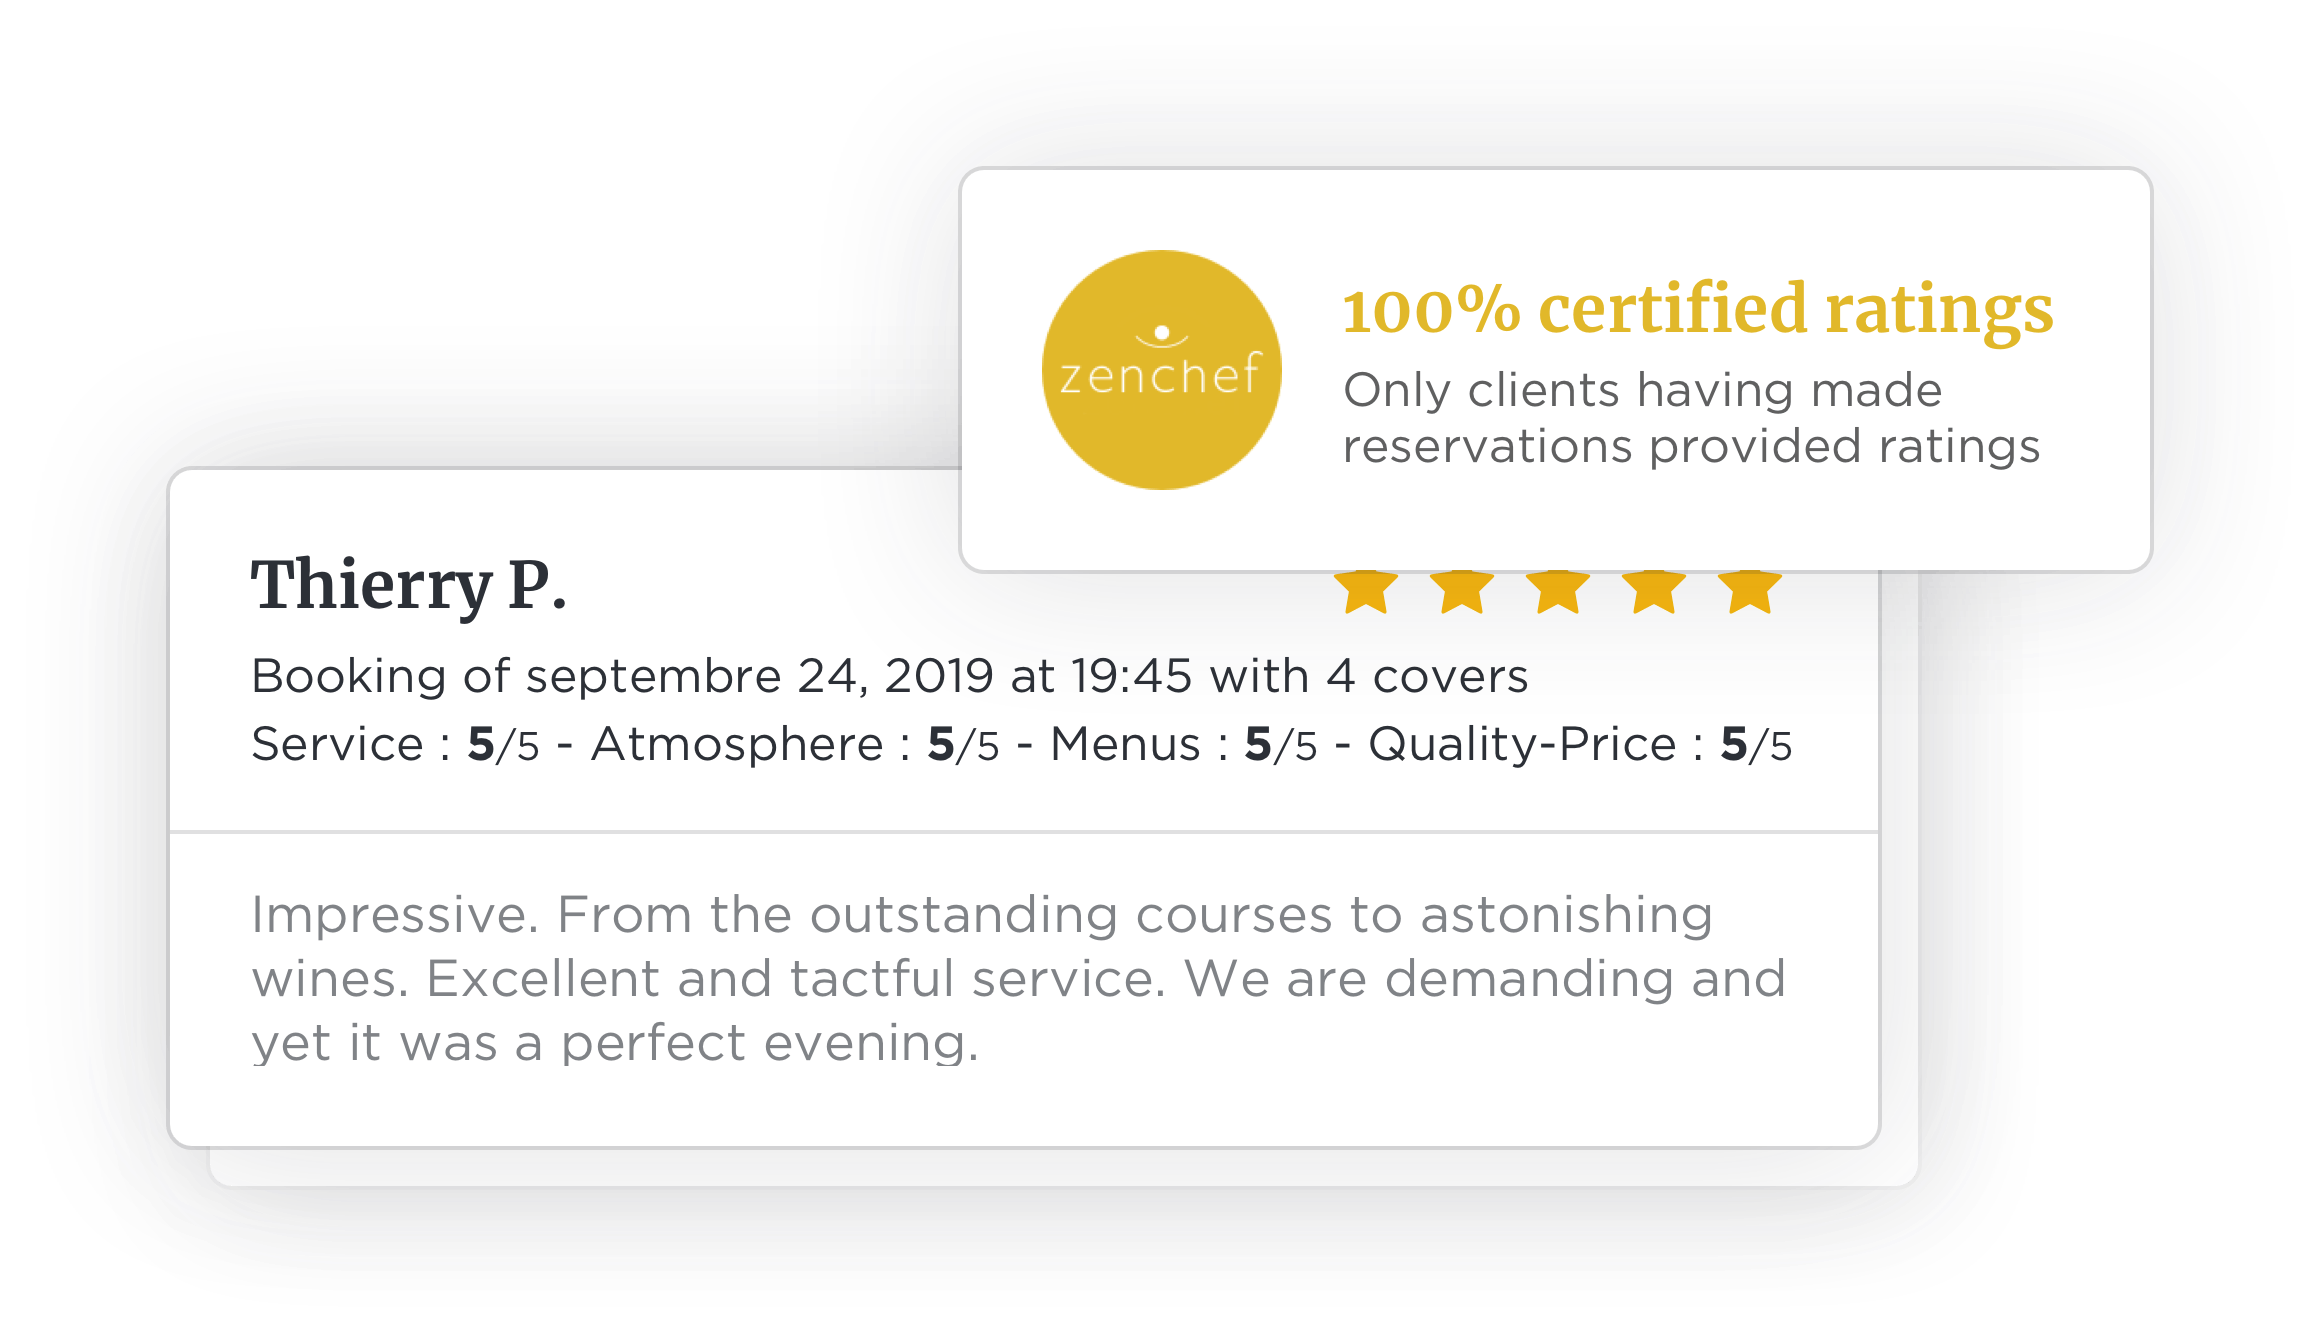 A 100% certified review left by a restaurant guest